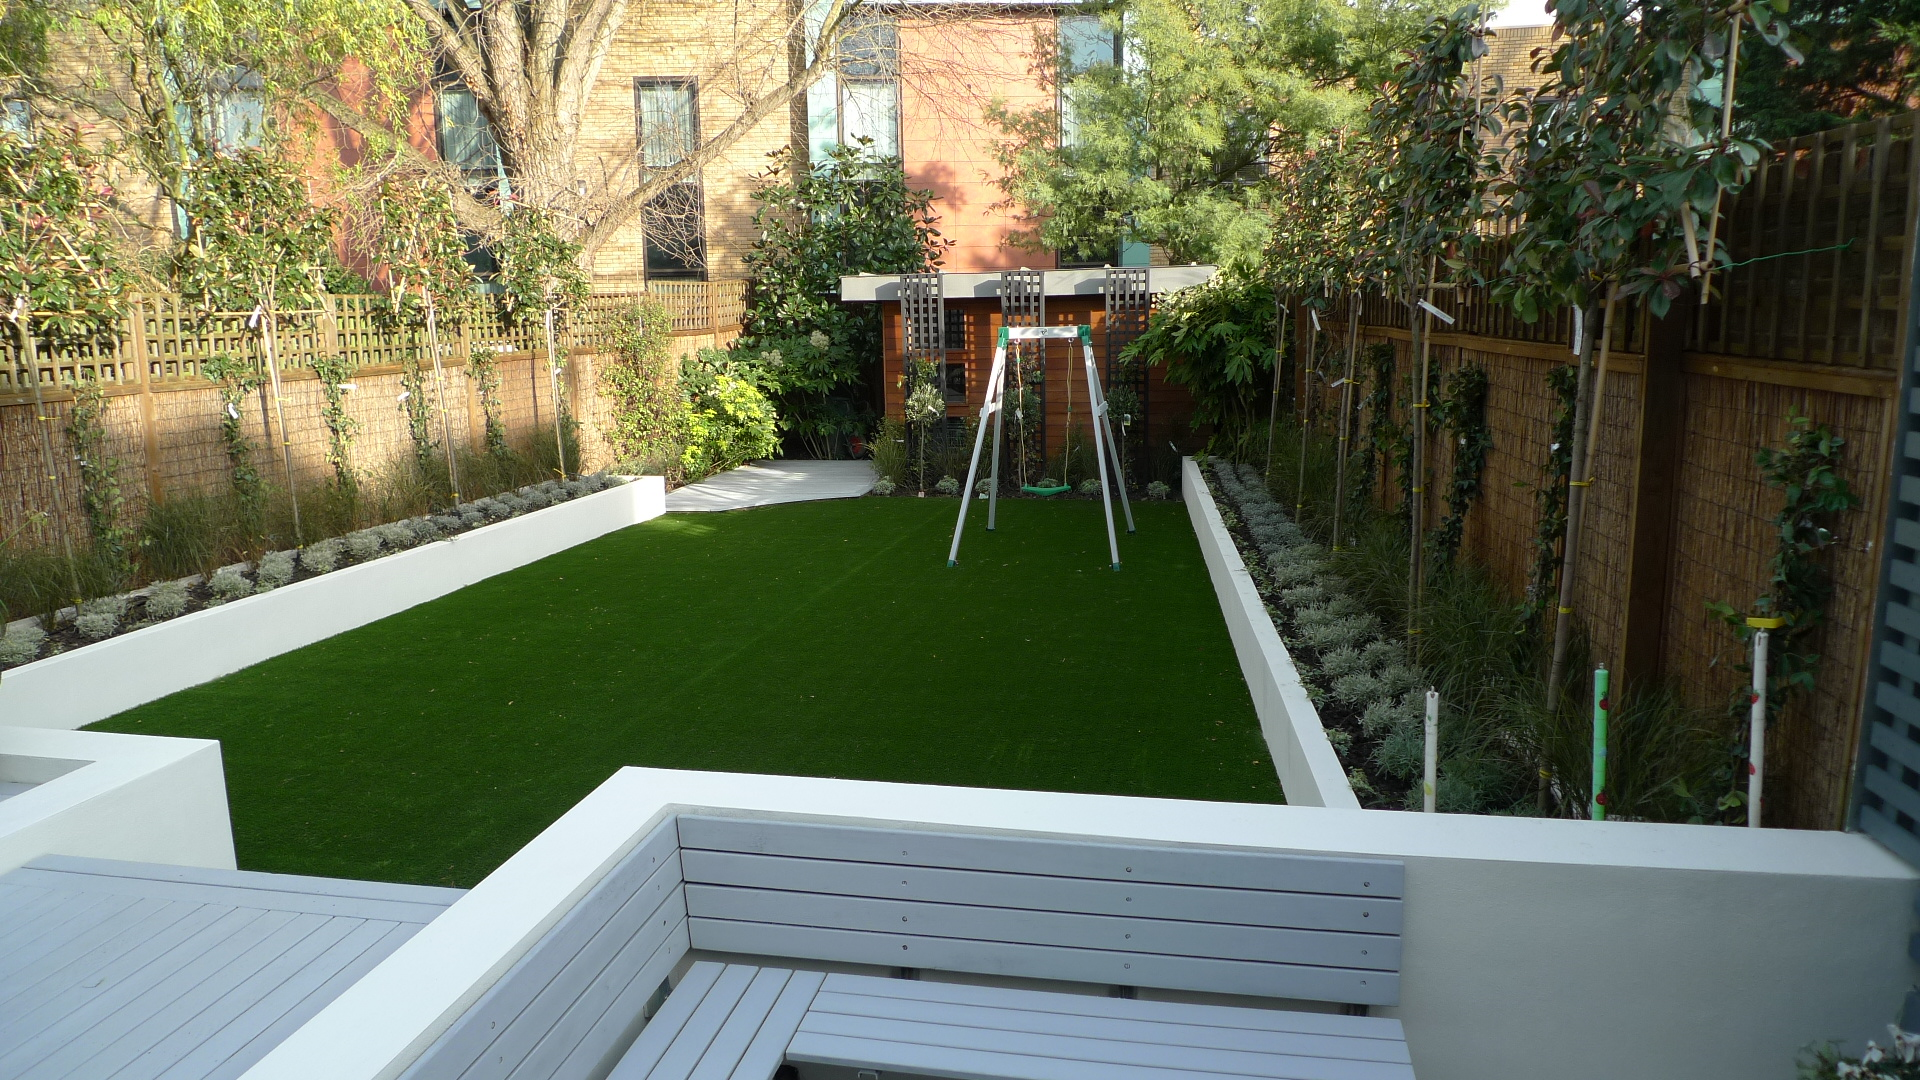 Modern garden design ideas london london garden design for Landscape layout ideas